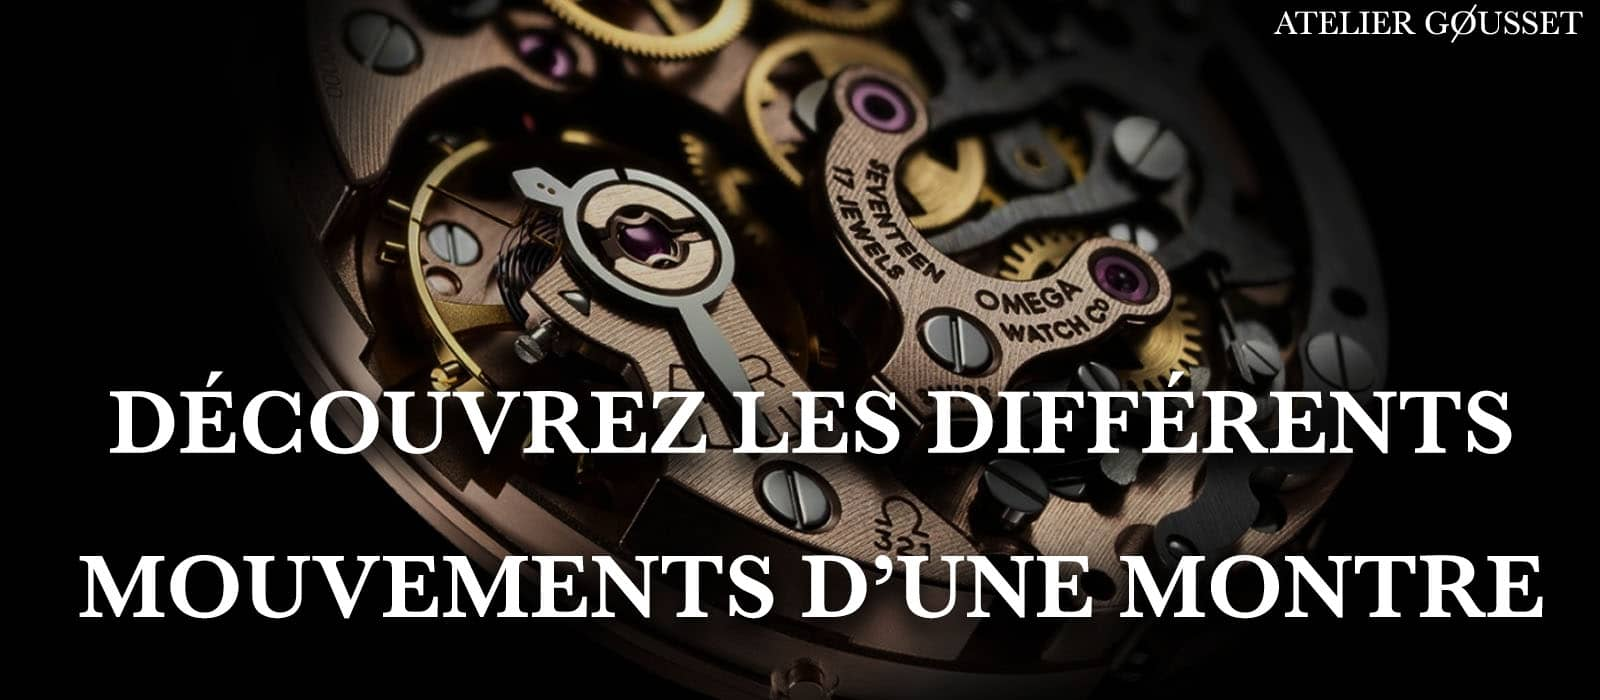 different-mouvement-montre